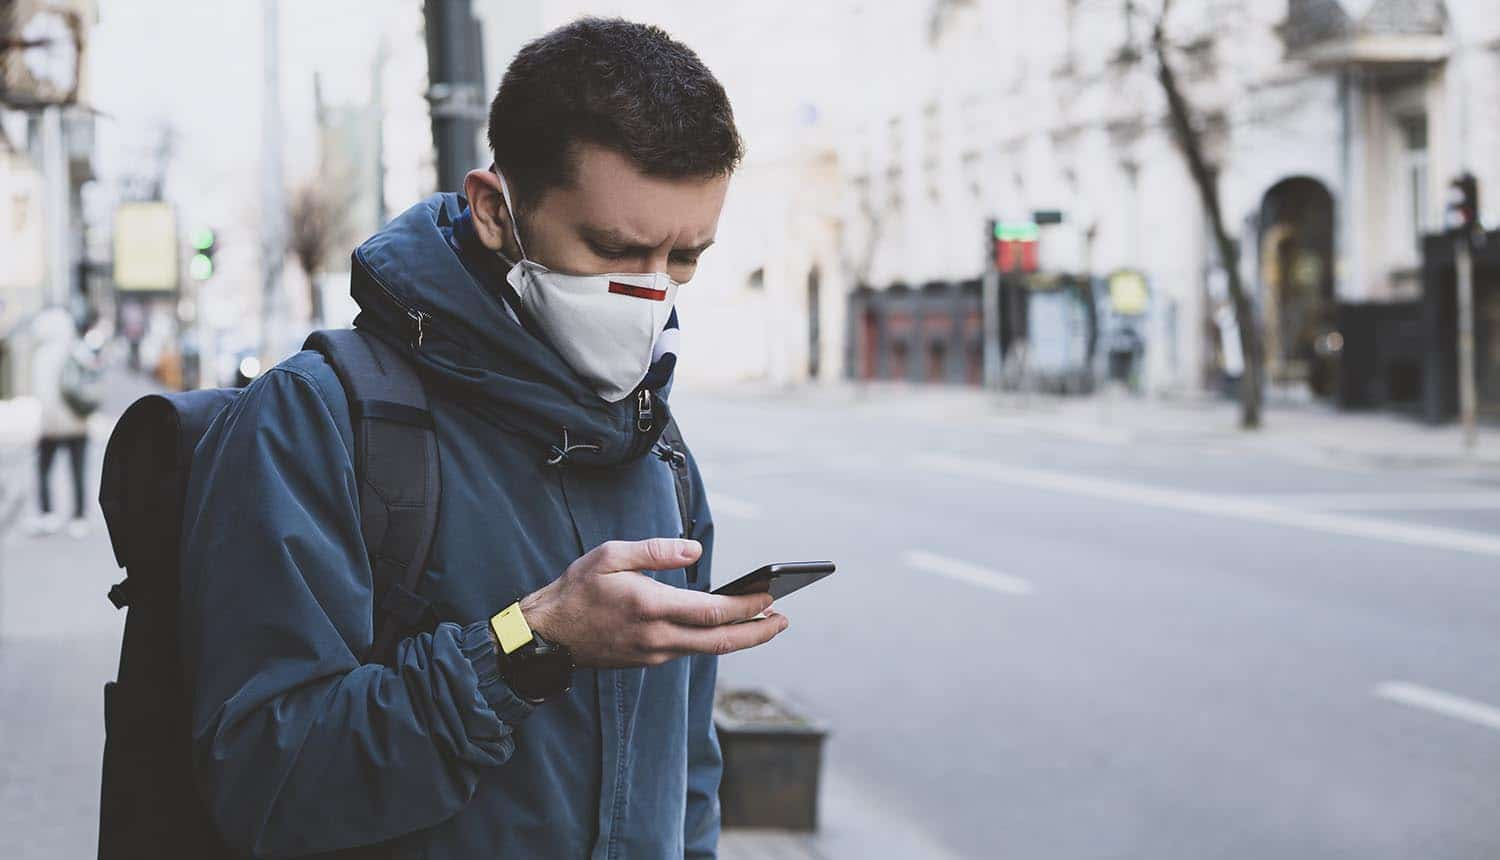 Man in mask using mobile on the street showing the attempt to balance public health measures with user privacy for contact tracing apps